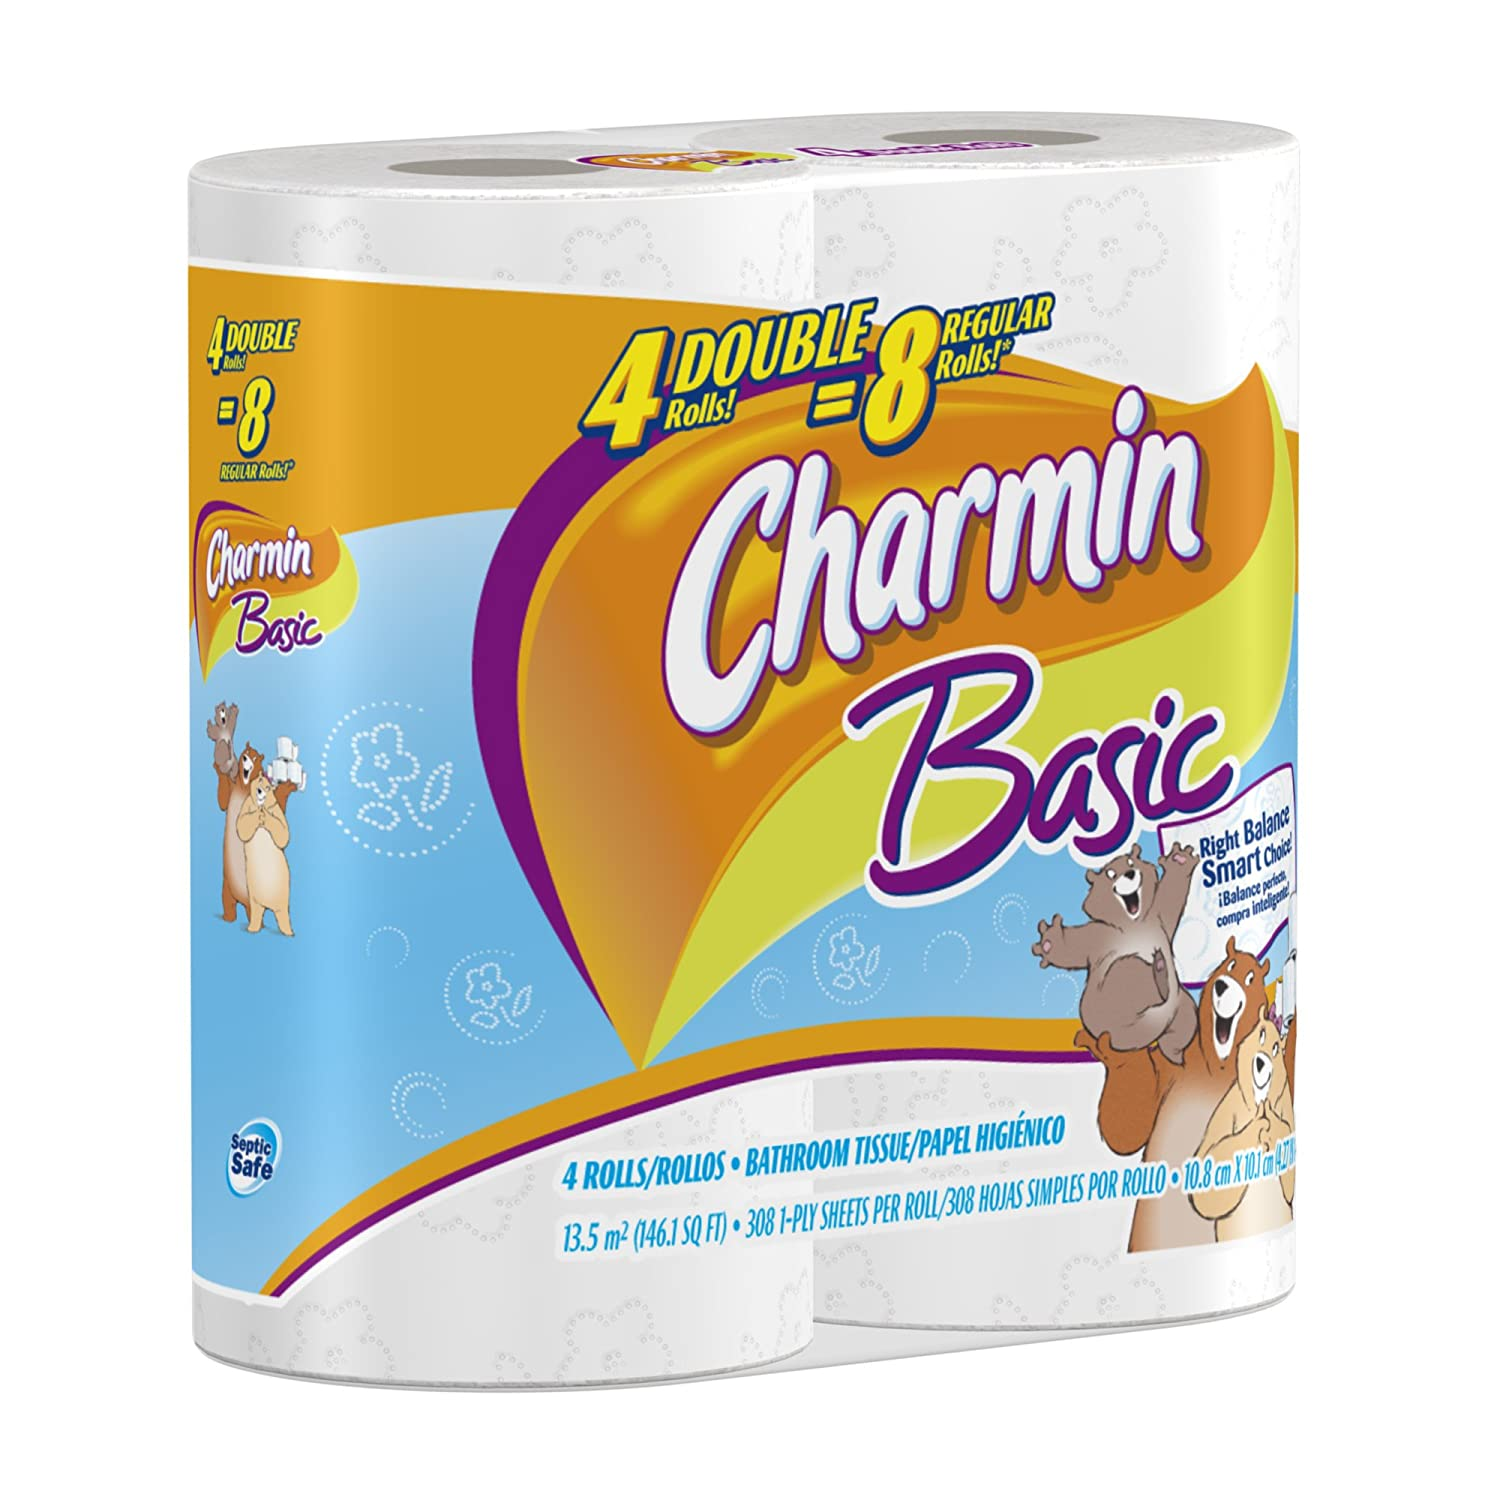 Amazon.com: Charmin Basic, Double Rolls, 4 Count Pack (Pack of 10 ...